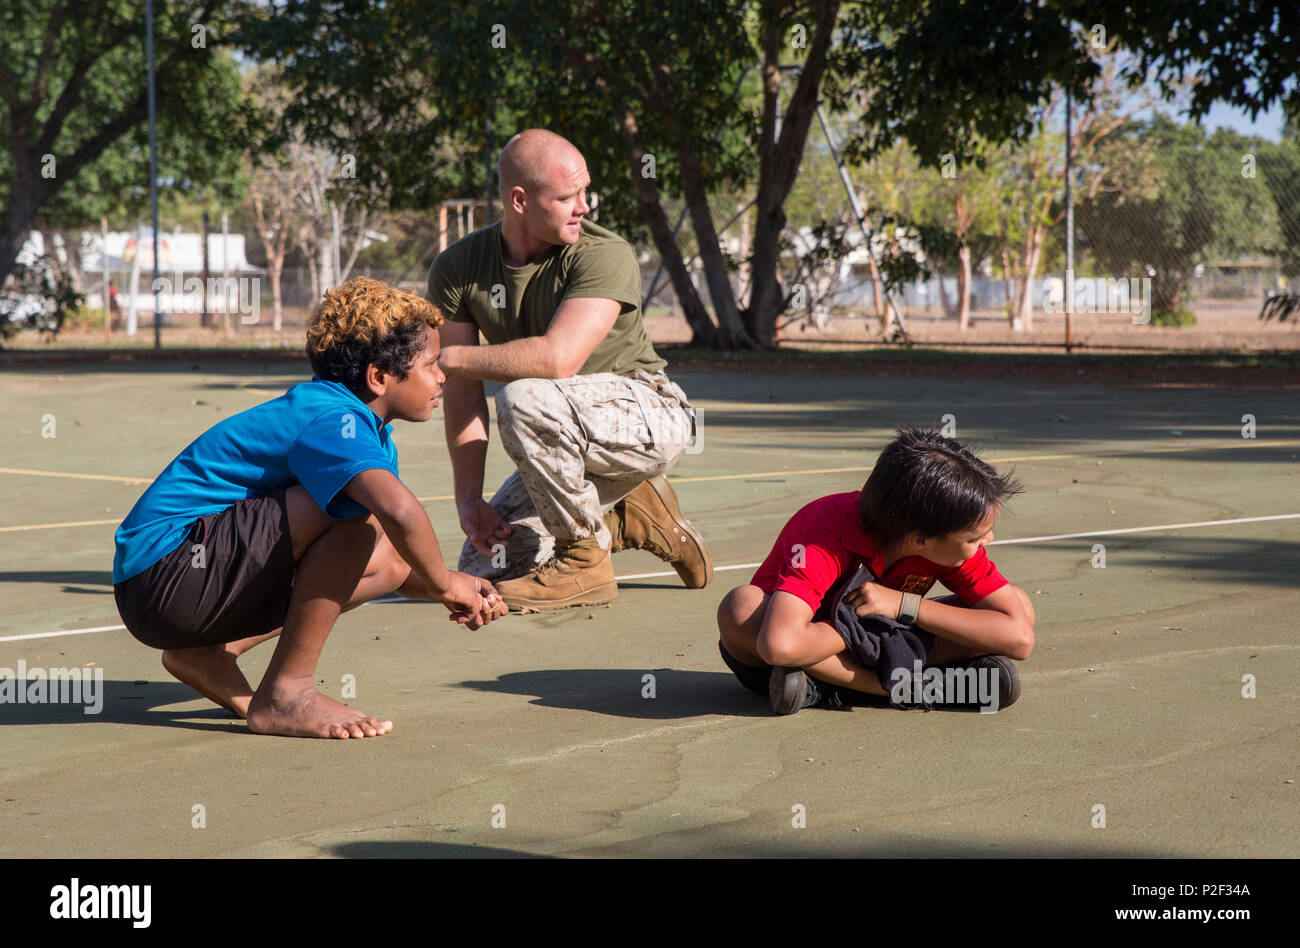 """U.S. Marine Corps Cpl. Landis Lied, an embarkation and logistics specialist assigned to Marine Fighter Attack Squadron (VMFA) 122, plays Red Red Bob, a version of the game """"tag"""", with students at MacFarlane Primary School Katherine, Northern Territory, Australia, Sept.1, 2016. Invited by the school every iteration of Southern Frontier, a three week unit level training conducted by U.S. Marines  at Royal Australian Air Force Base Tindal, Marines mentor, teach and provide role models to the students. With a student population of 92 percent indigenous, students are provided a consolidated educati - Stock Image"""